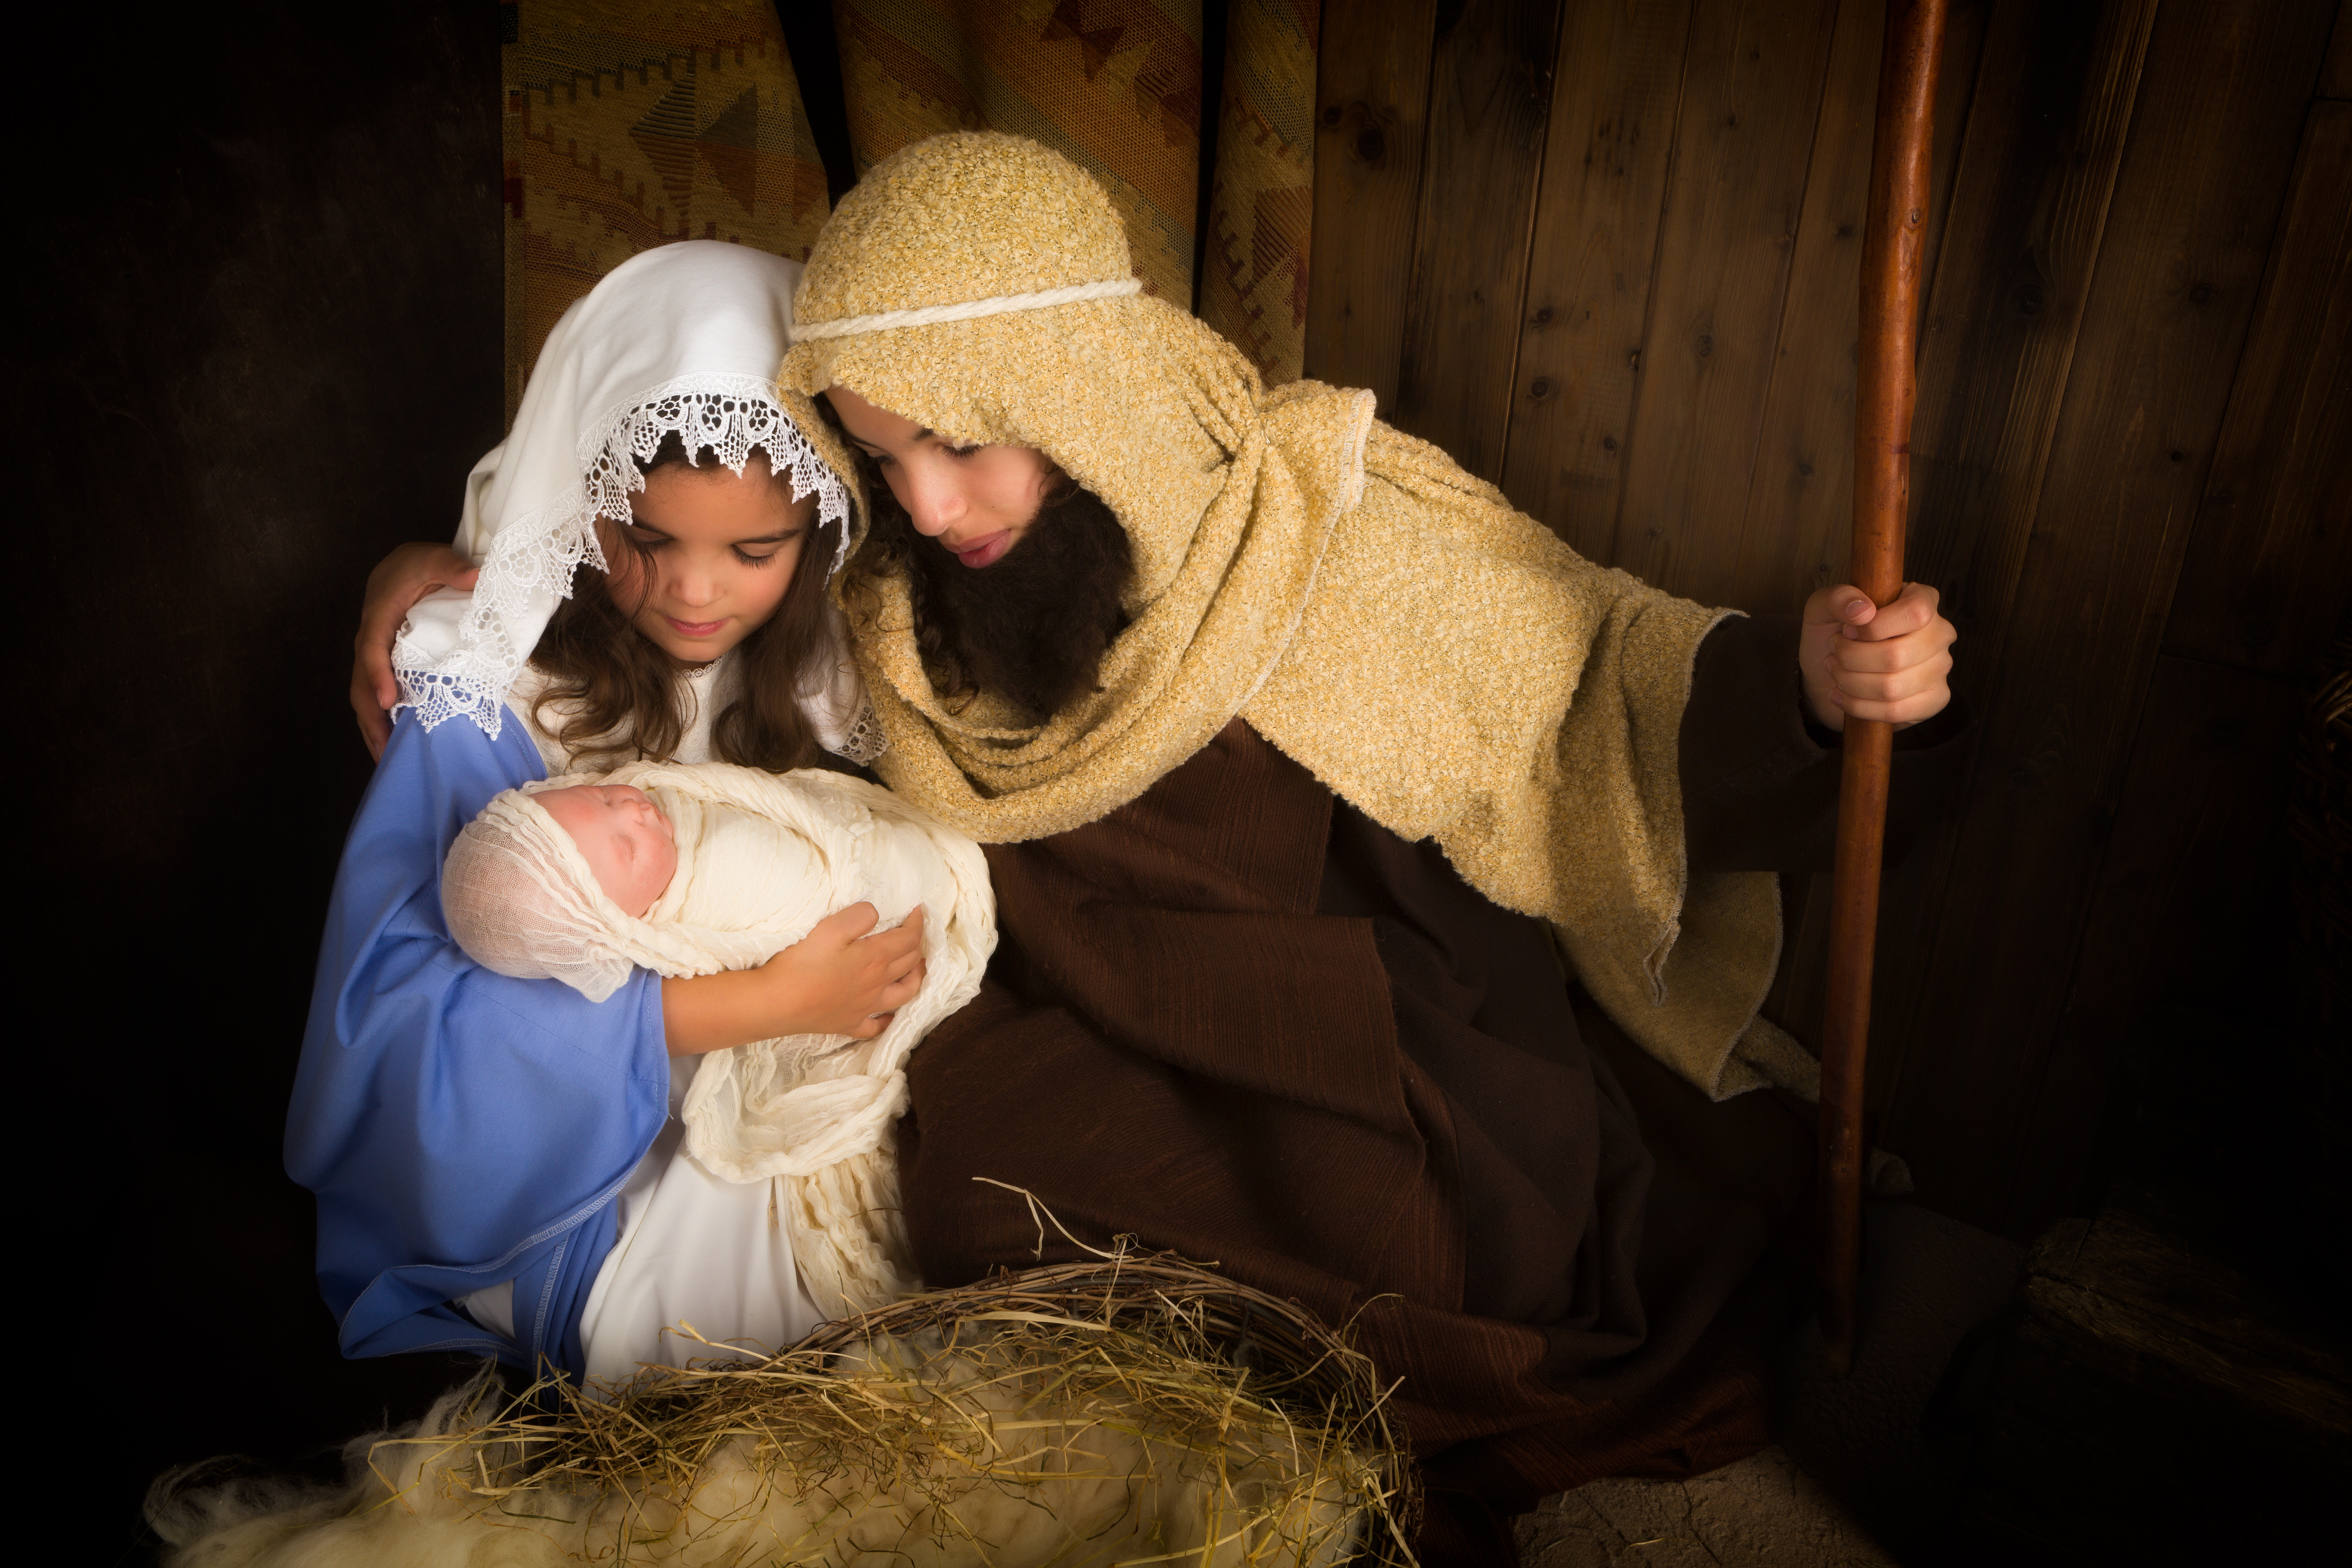 The 11 children you'll find in the Christmas nativity ...